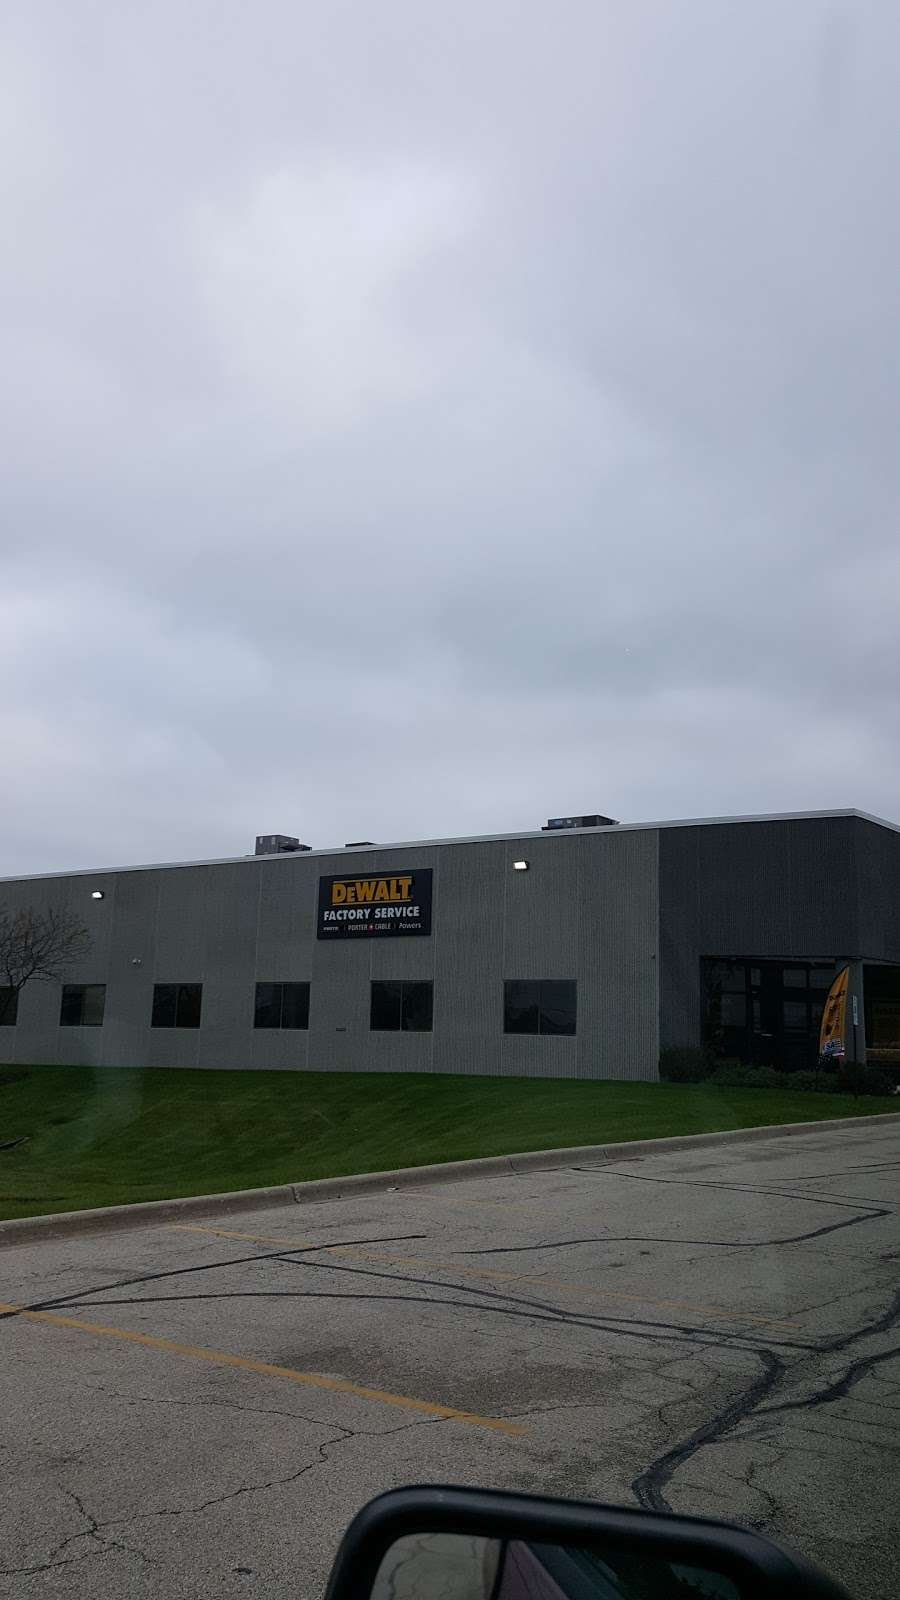 DEWALT Service Center - store  | Photo 3 of 9 | Address: 901 S Rohlwing Rd A, Addison, IL 60101, USA | Phone: (630) 521-1097